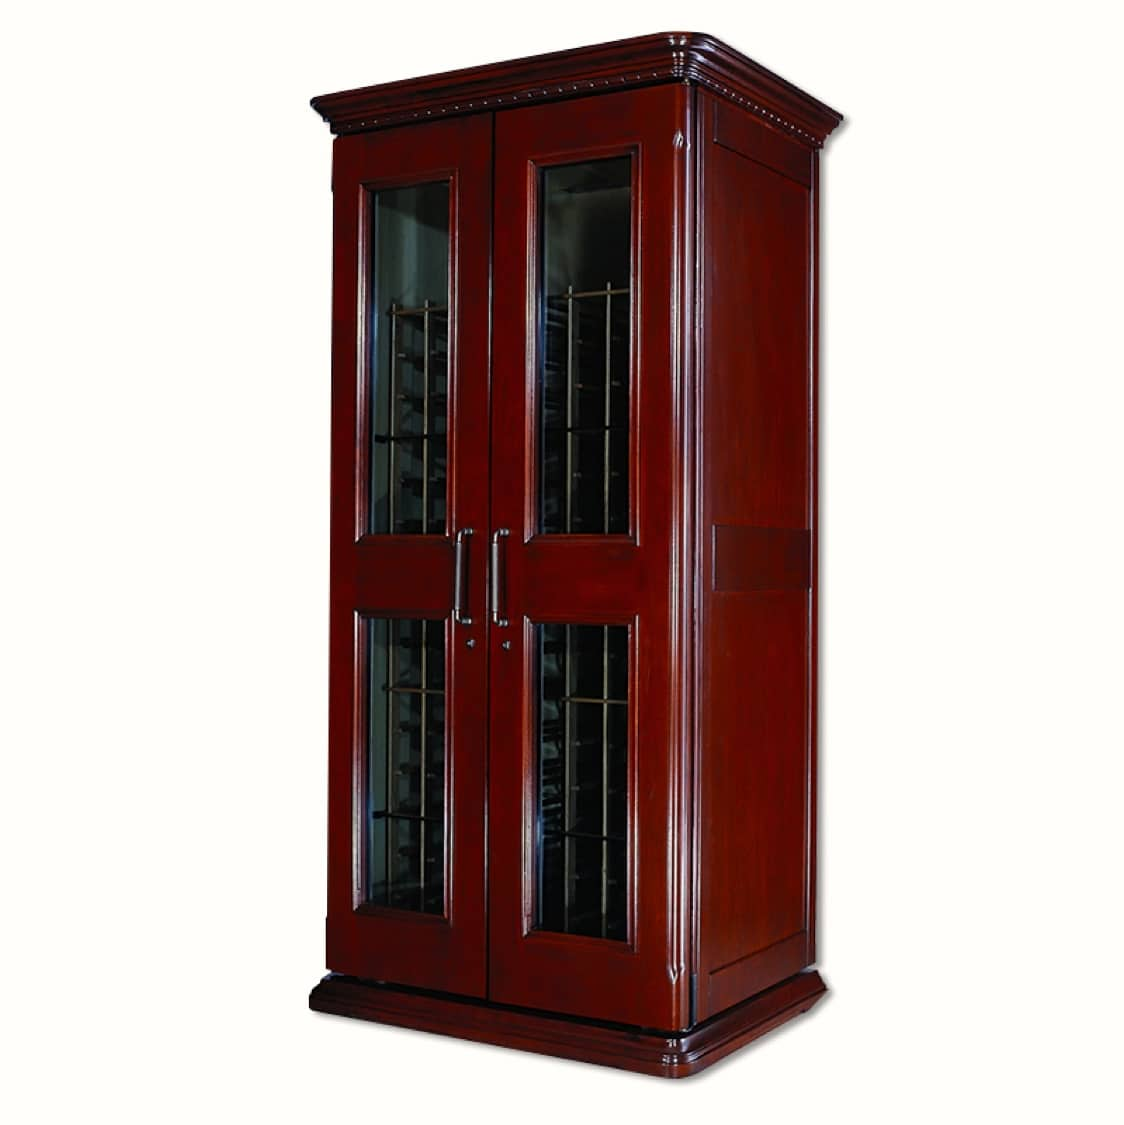 Le Cache Wine Cabinet Stylish And Affordable Refrigerated Wine Cabinets San Antonio